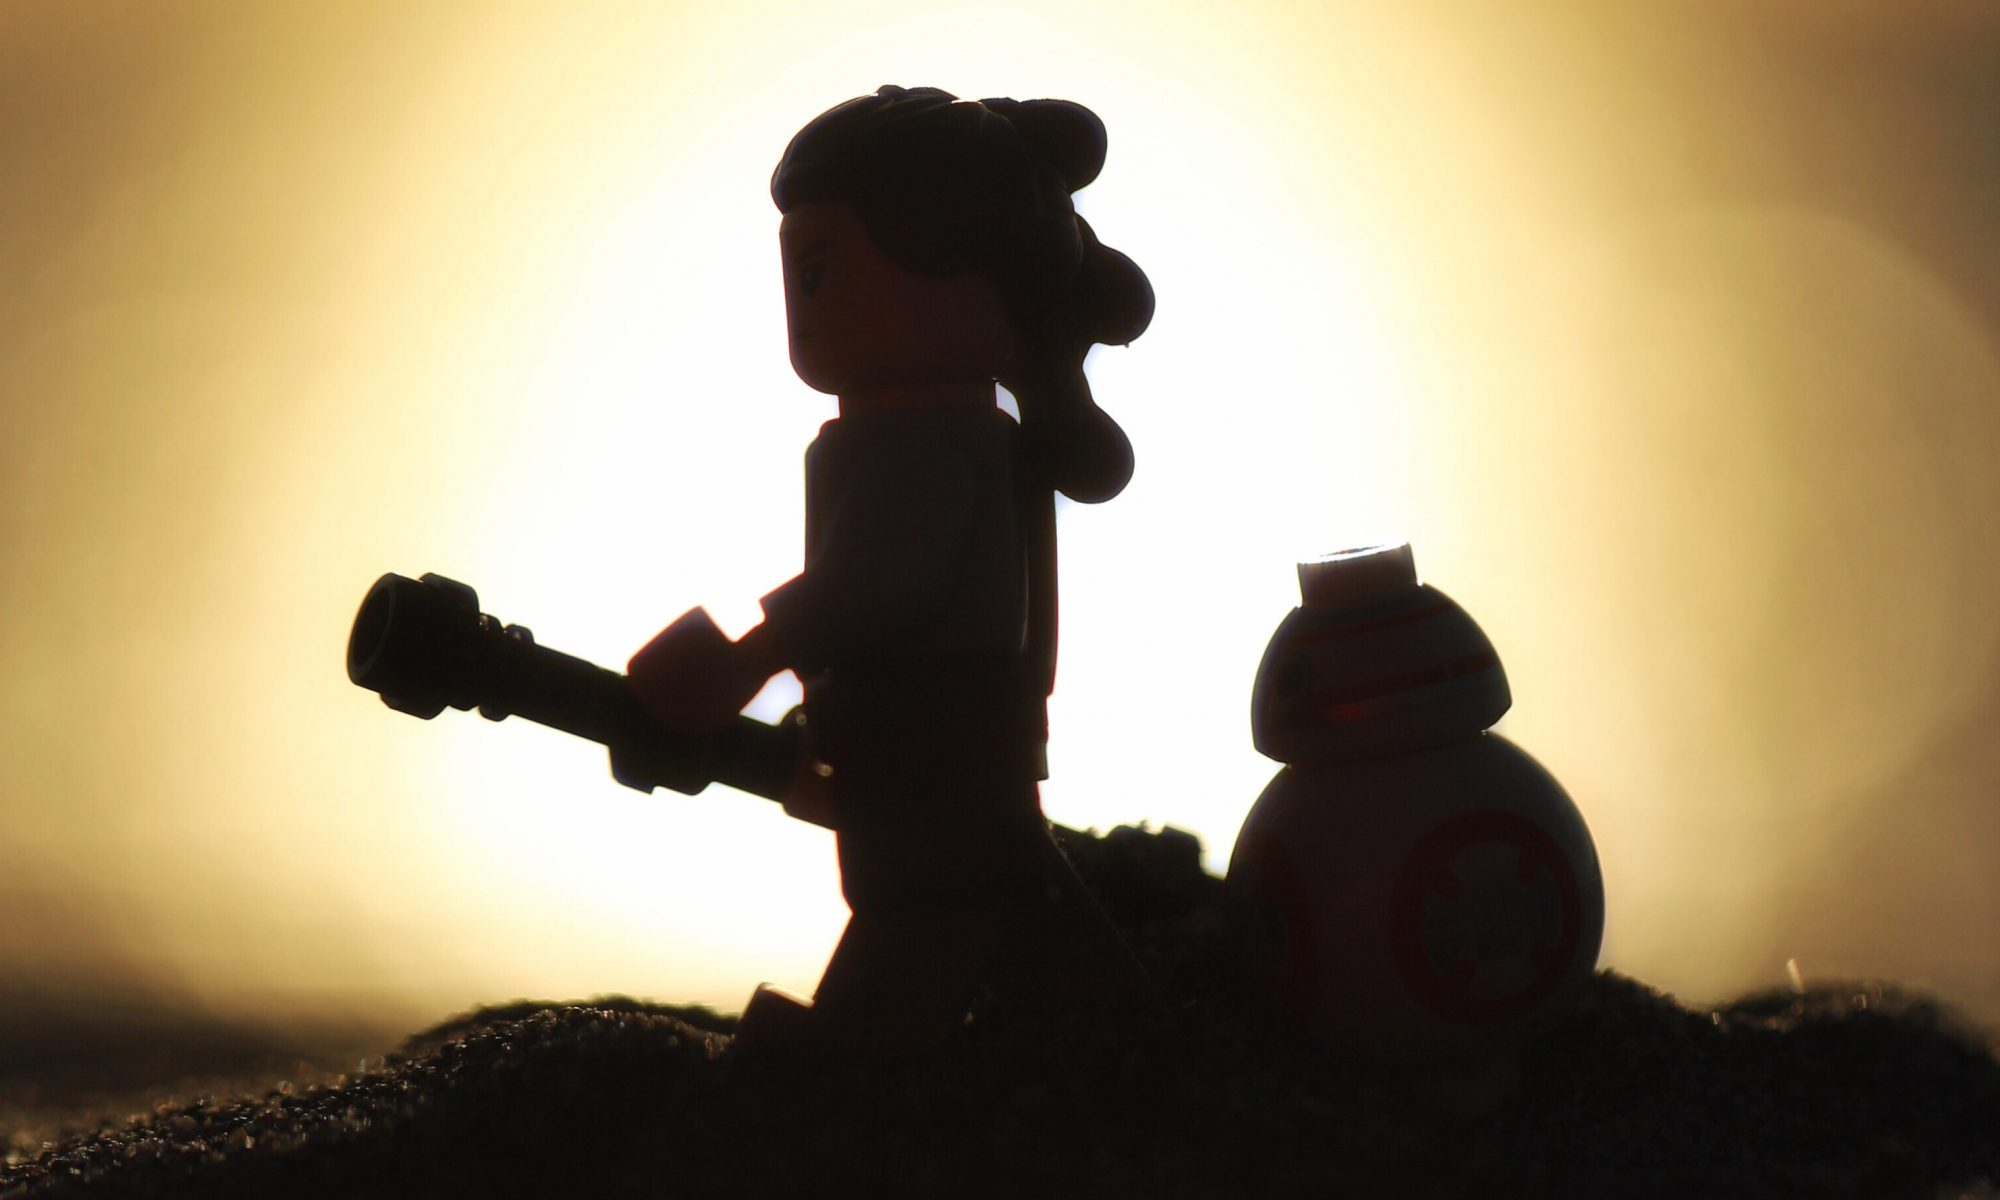 Rey-BB8-Sunset-Legography-xxsjc